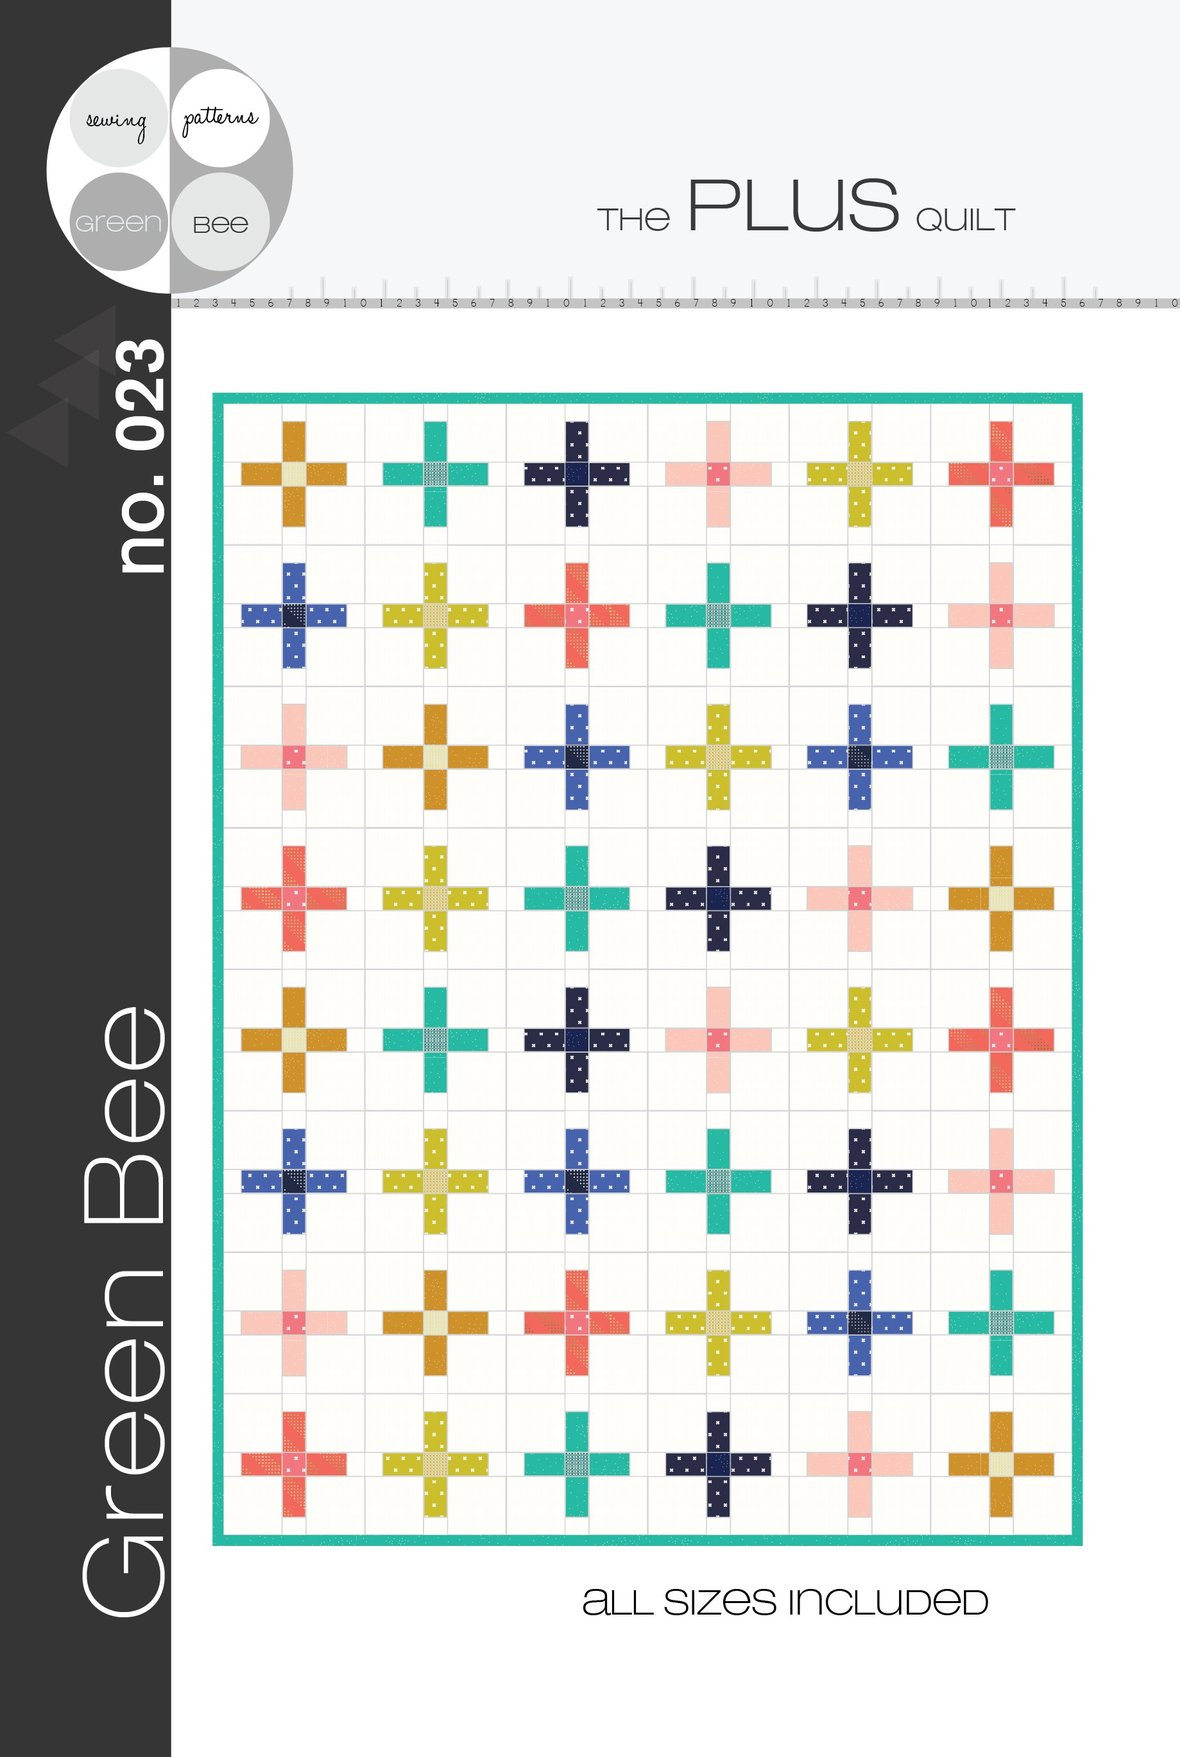 green bee design plus quilt sewing pattern